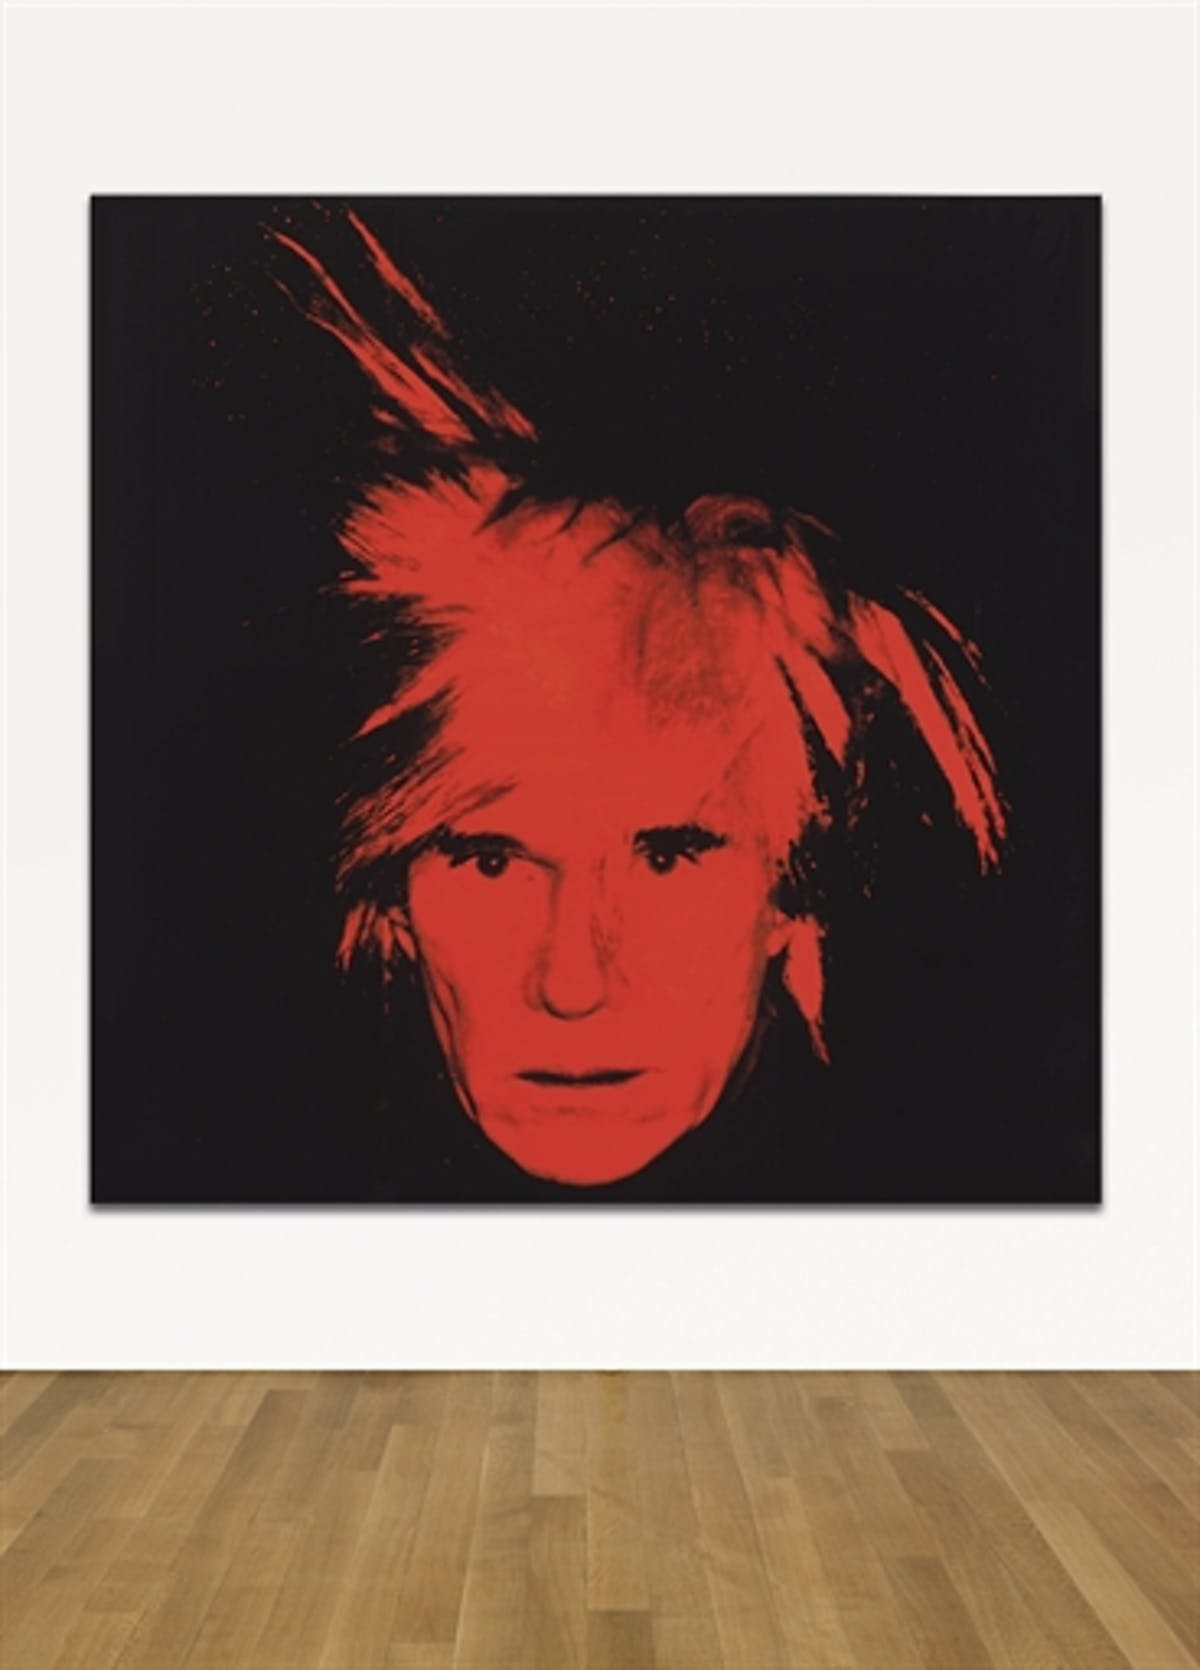 Andy Warhol, Self-portrait, 1986 | Foto: Christie's